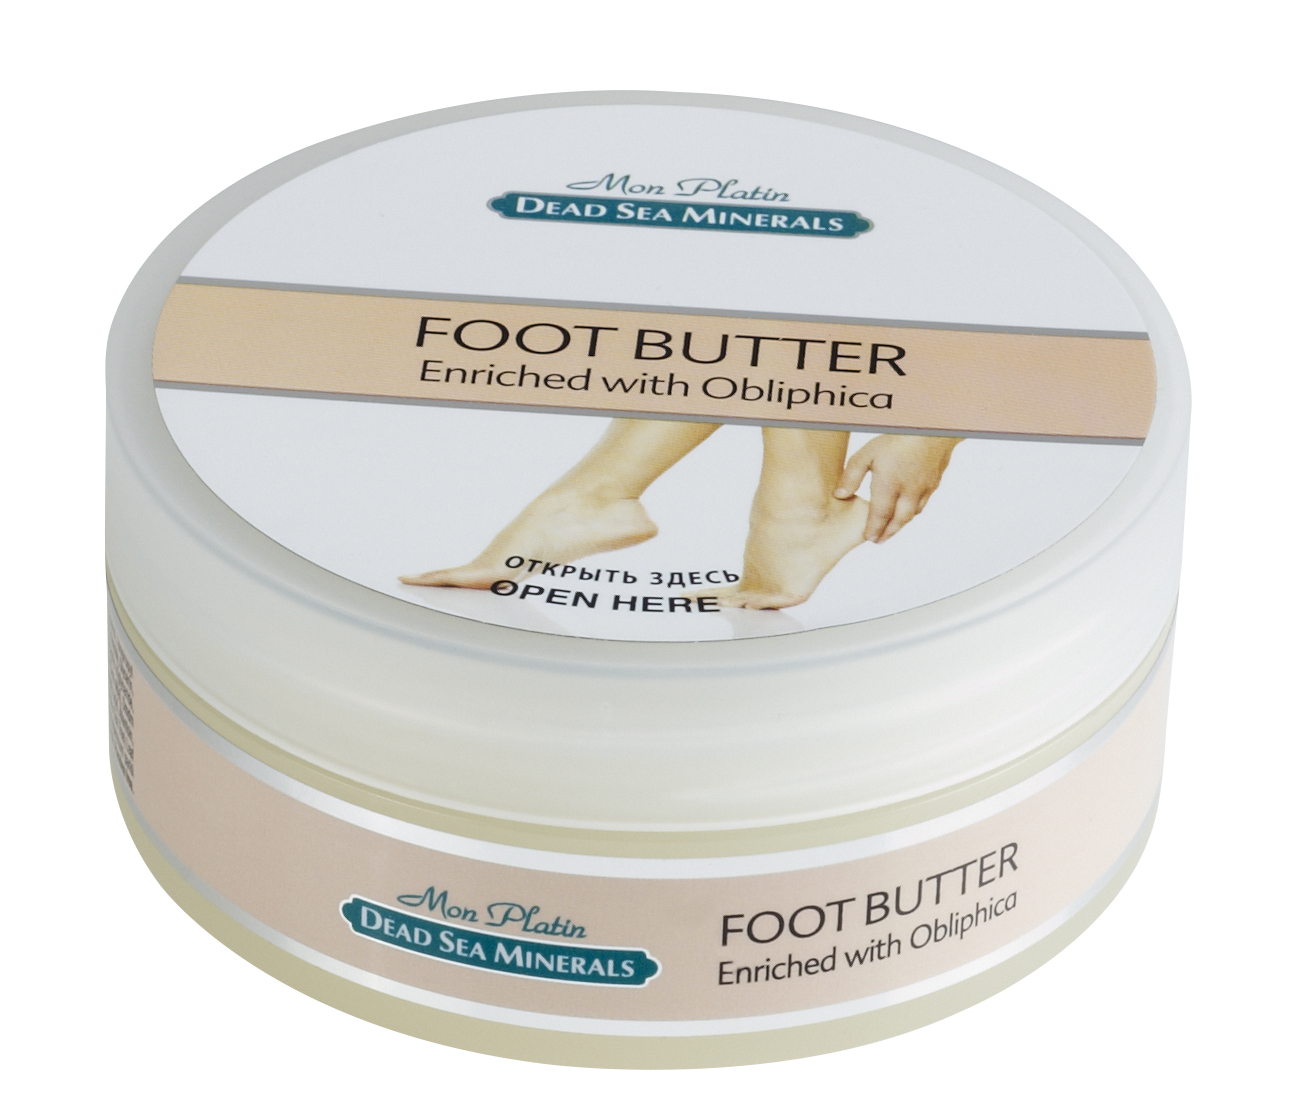 DSM Foot Butter Enriched With Obliphica  : image 1